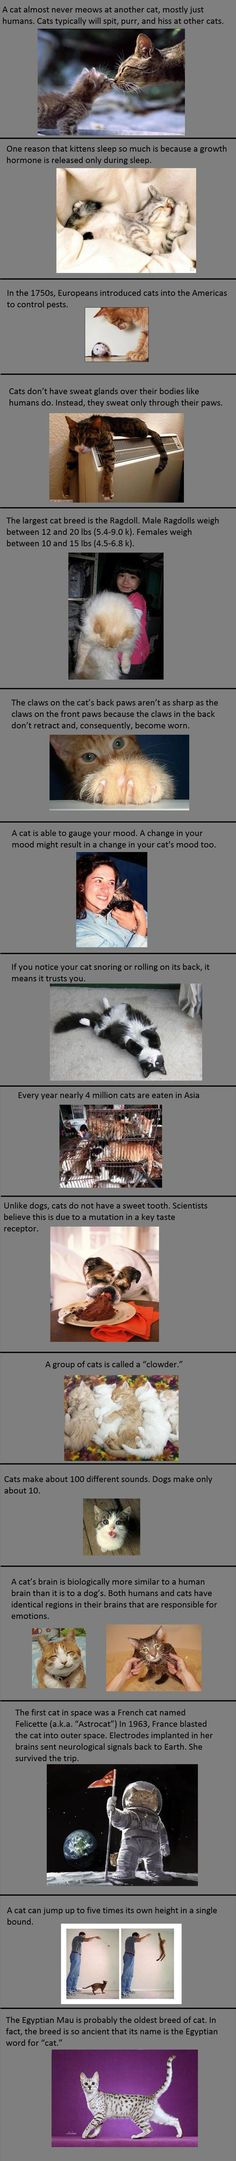 Some facts about cats.